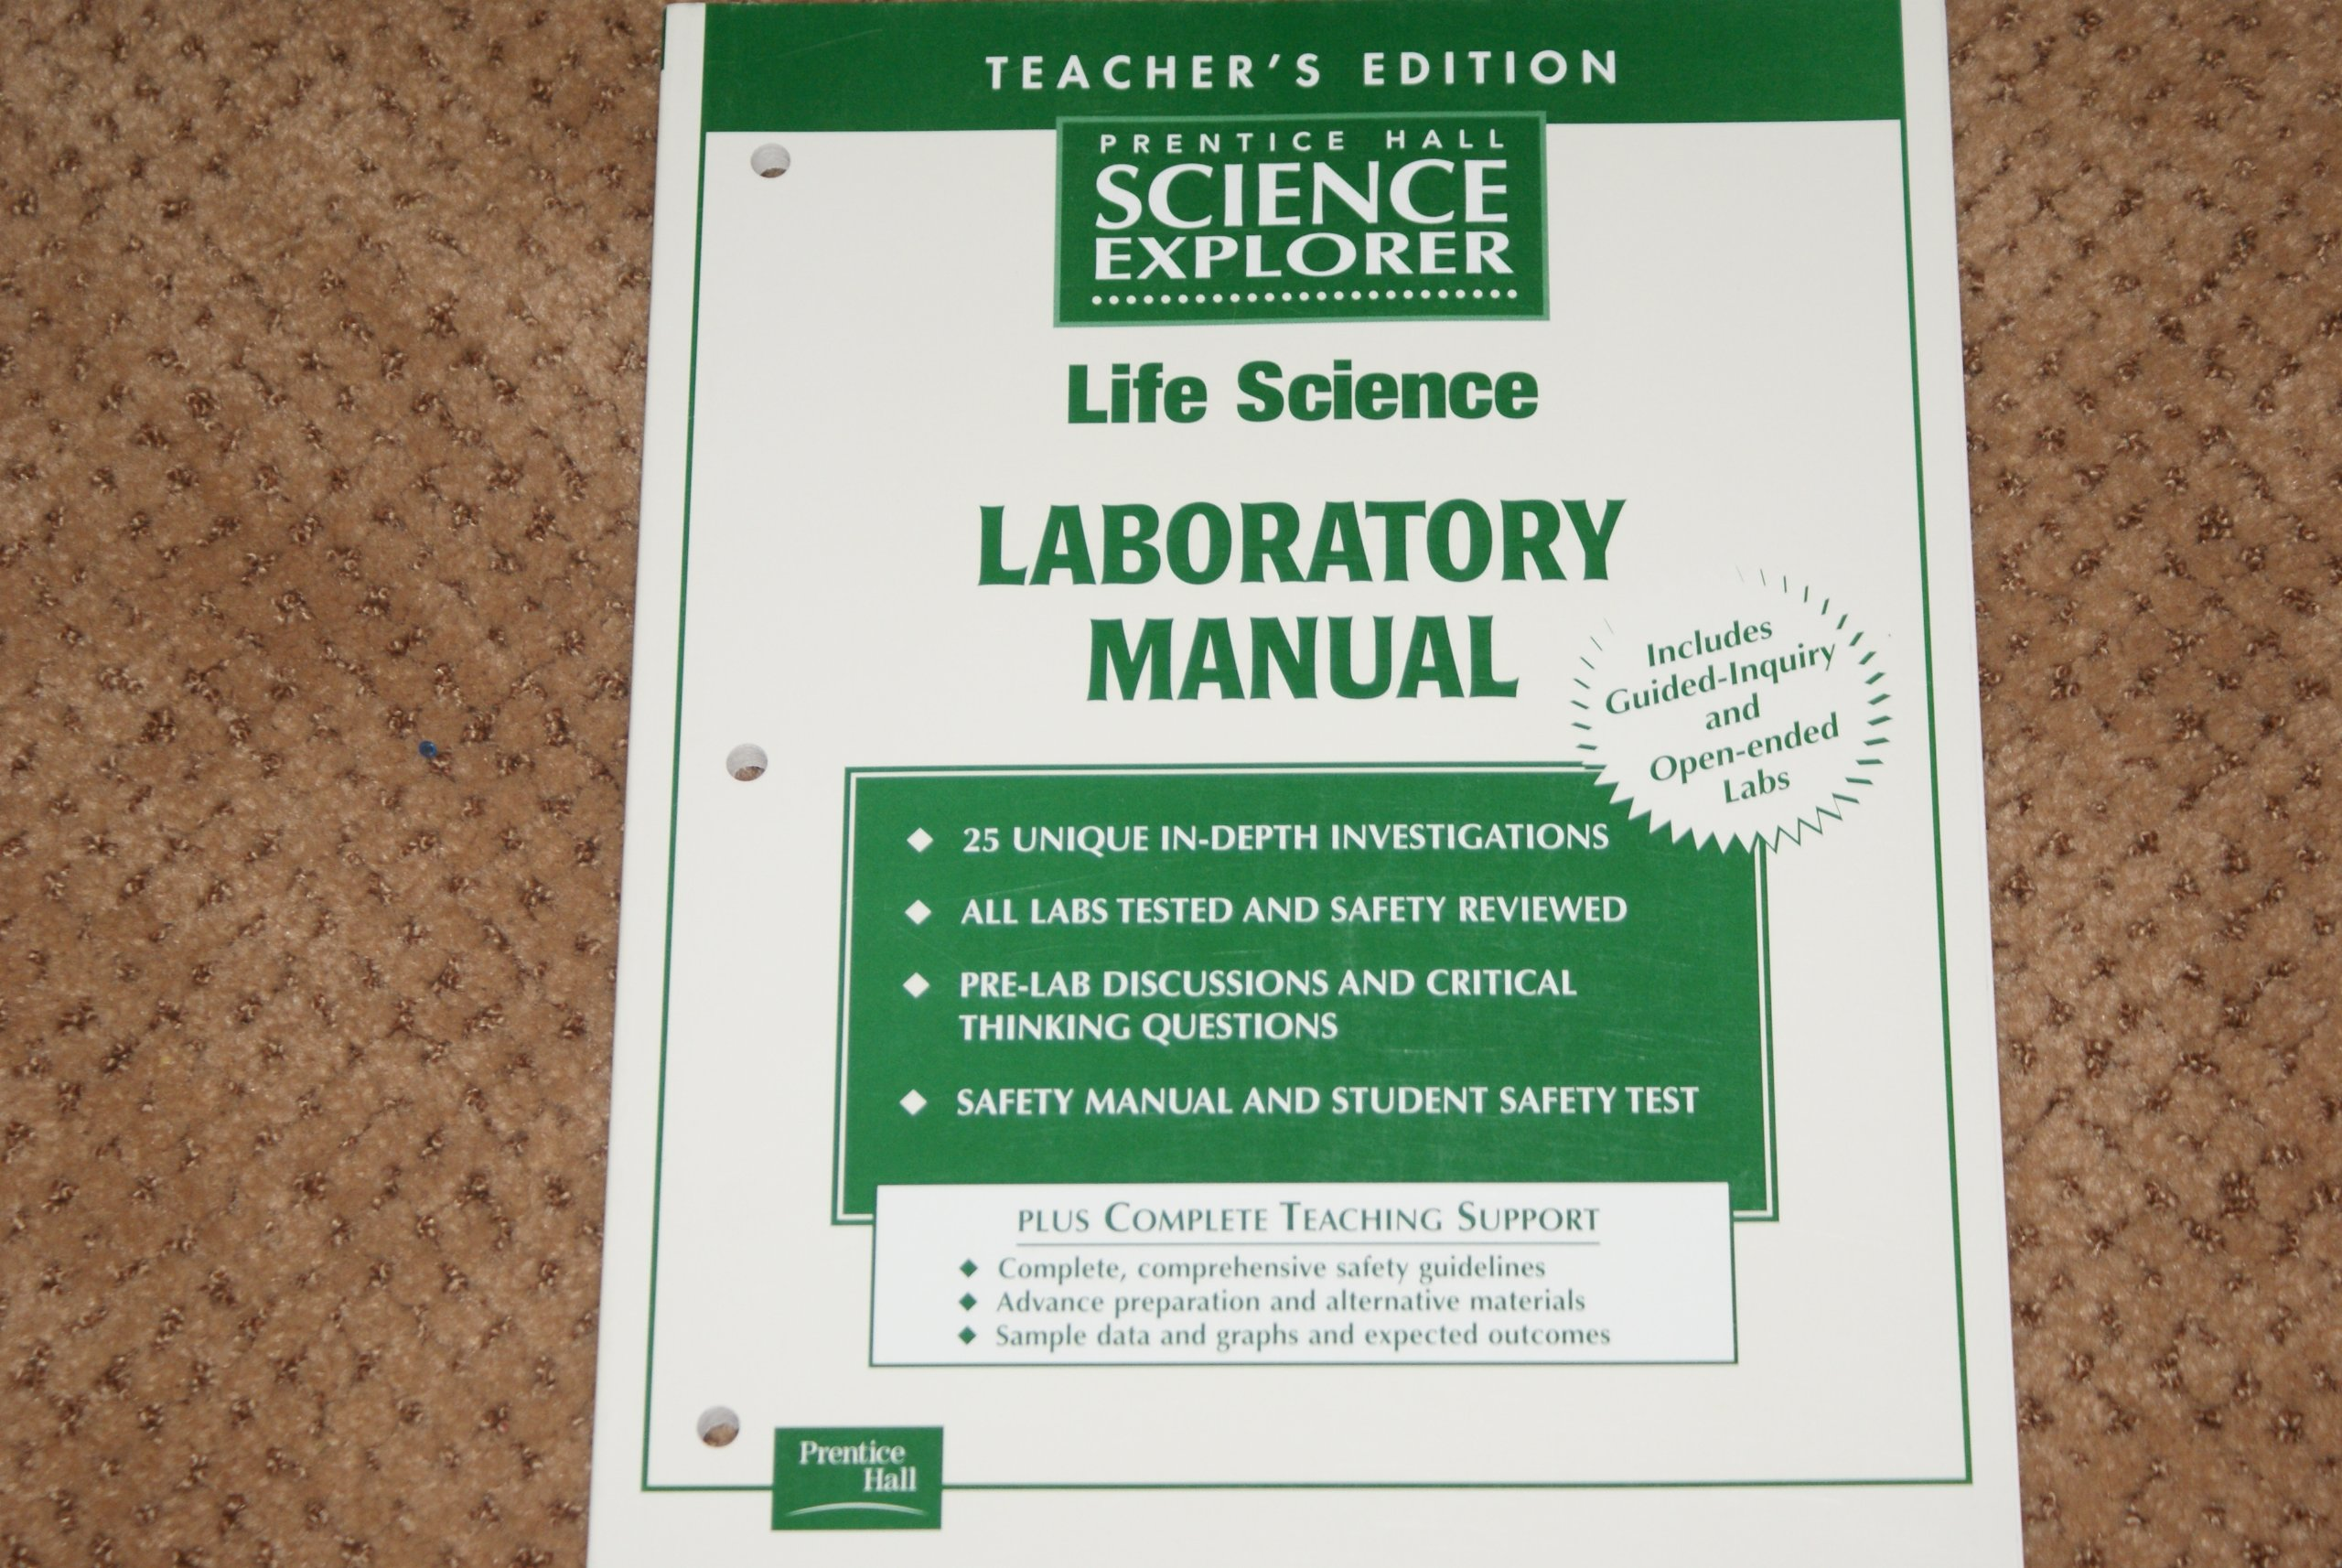 Prentice Hall Science Explorer Life Science Laboratory Manual: Prentice Hall:  9780130439949: Amazon.com: Books